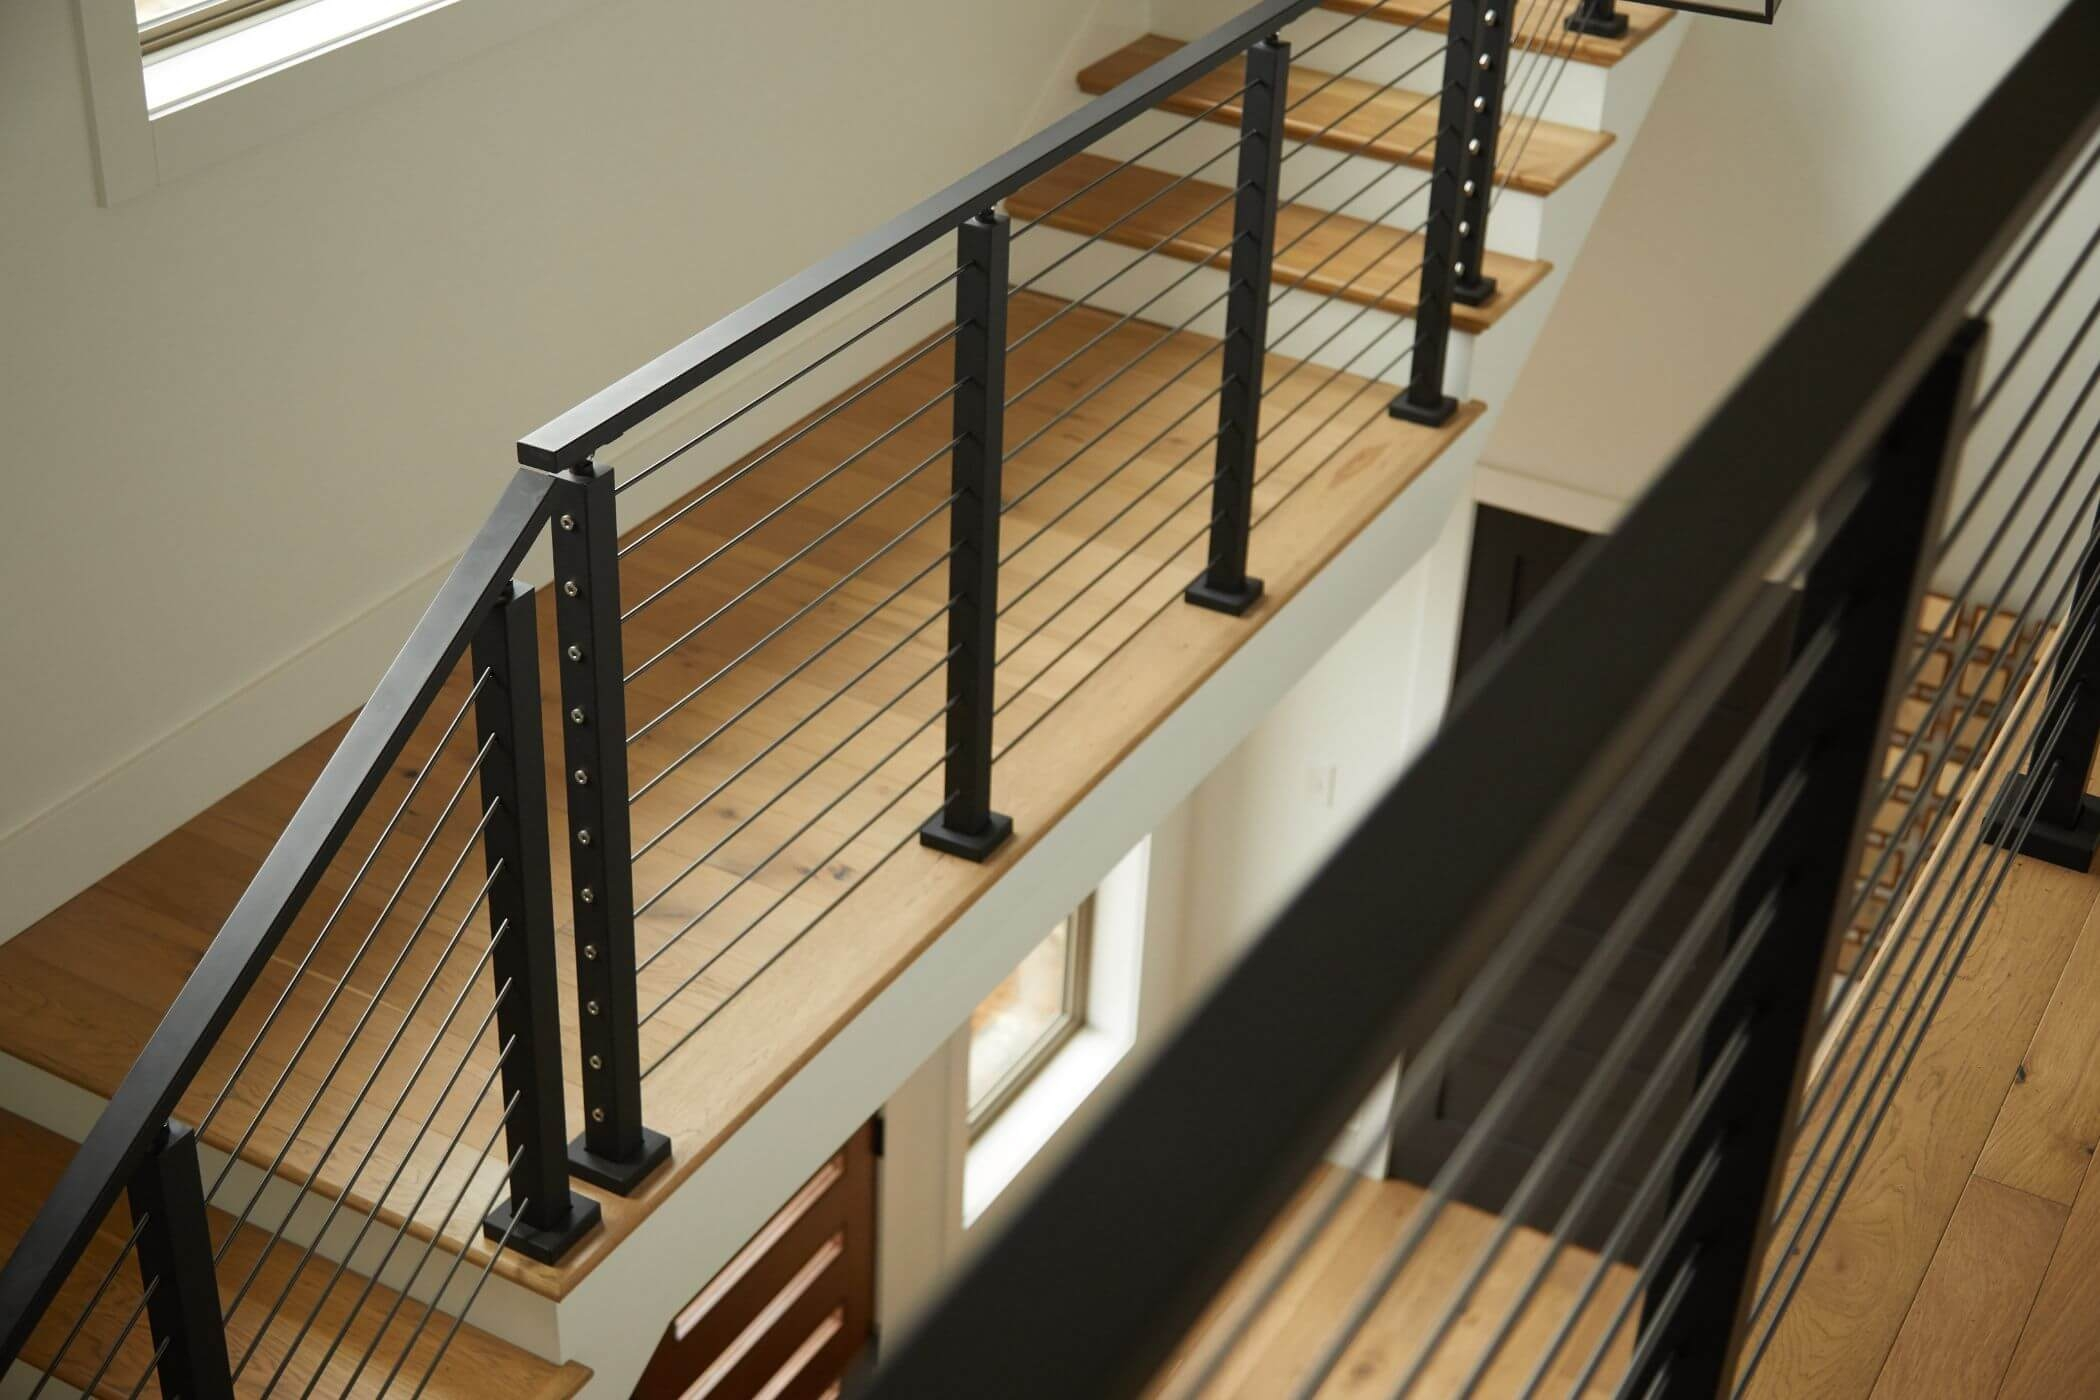 Onyx Rod Railing System Black Stainless Steel Railing Viewrail | Black Metal Handrail For Stairs | Rod Iron | Metal Railing | Iron Pipe | Natural Wood | Artistic